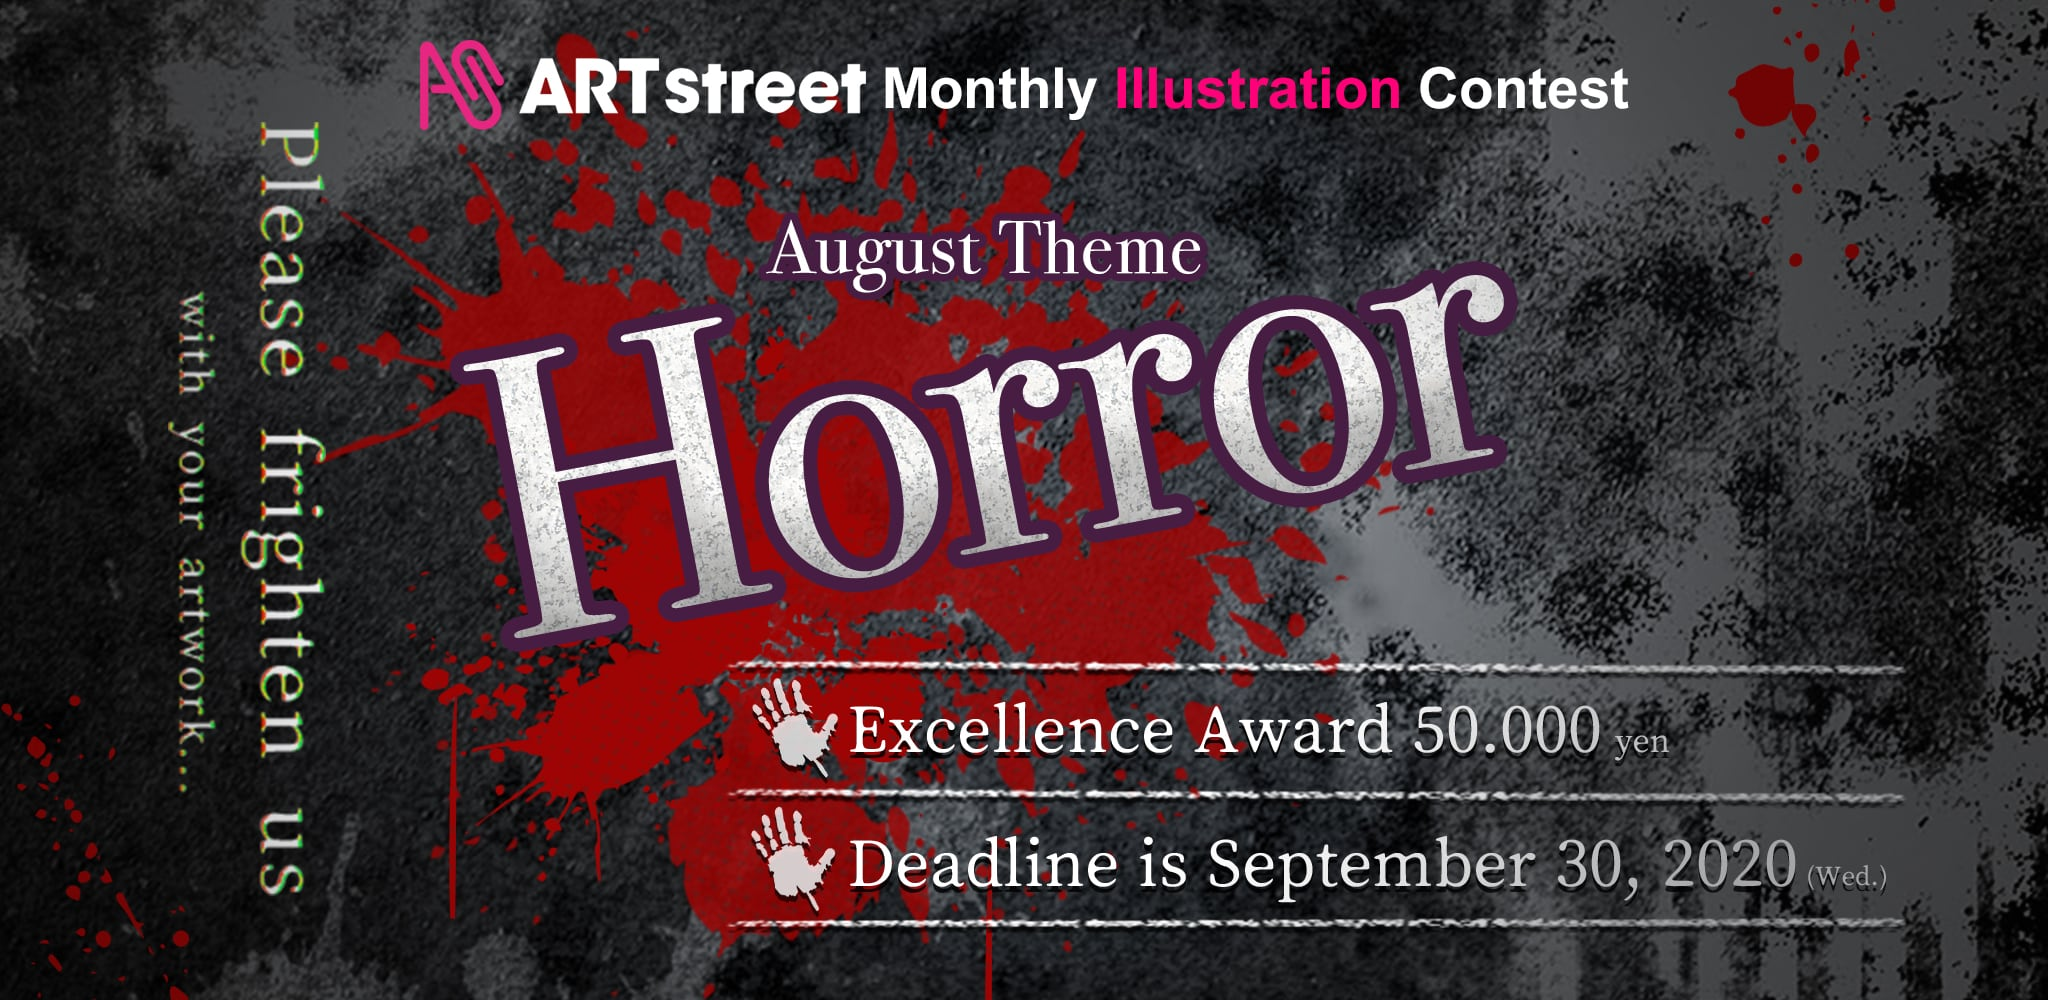 ART street Monthly Illustration Contest August Theme: Horror | Contest - ART street by MediBang